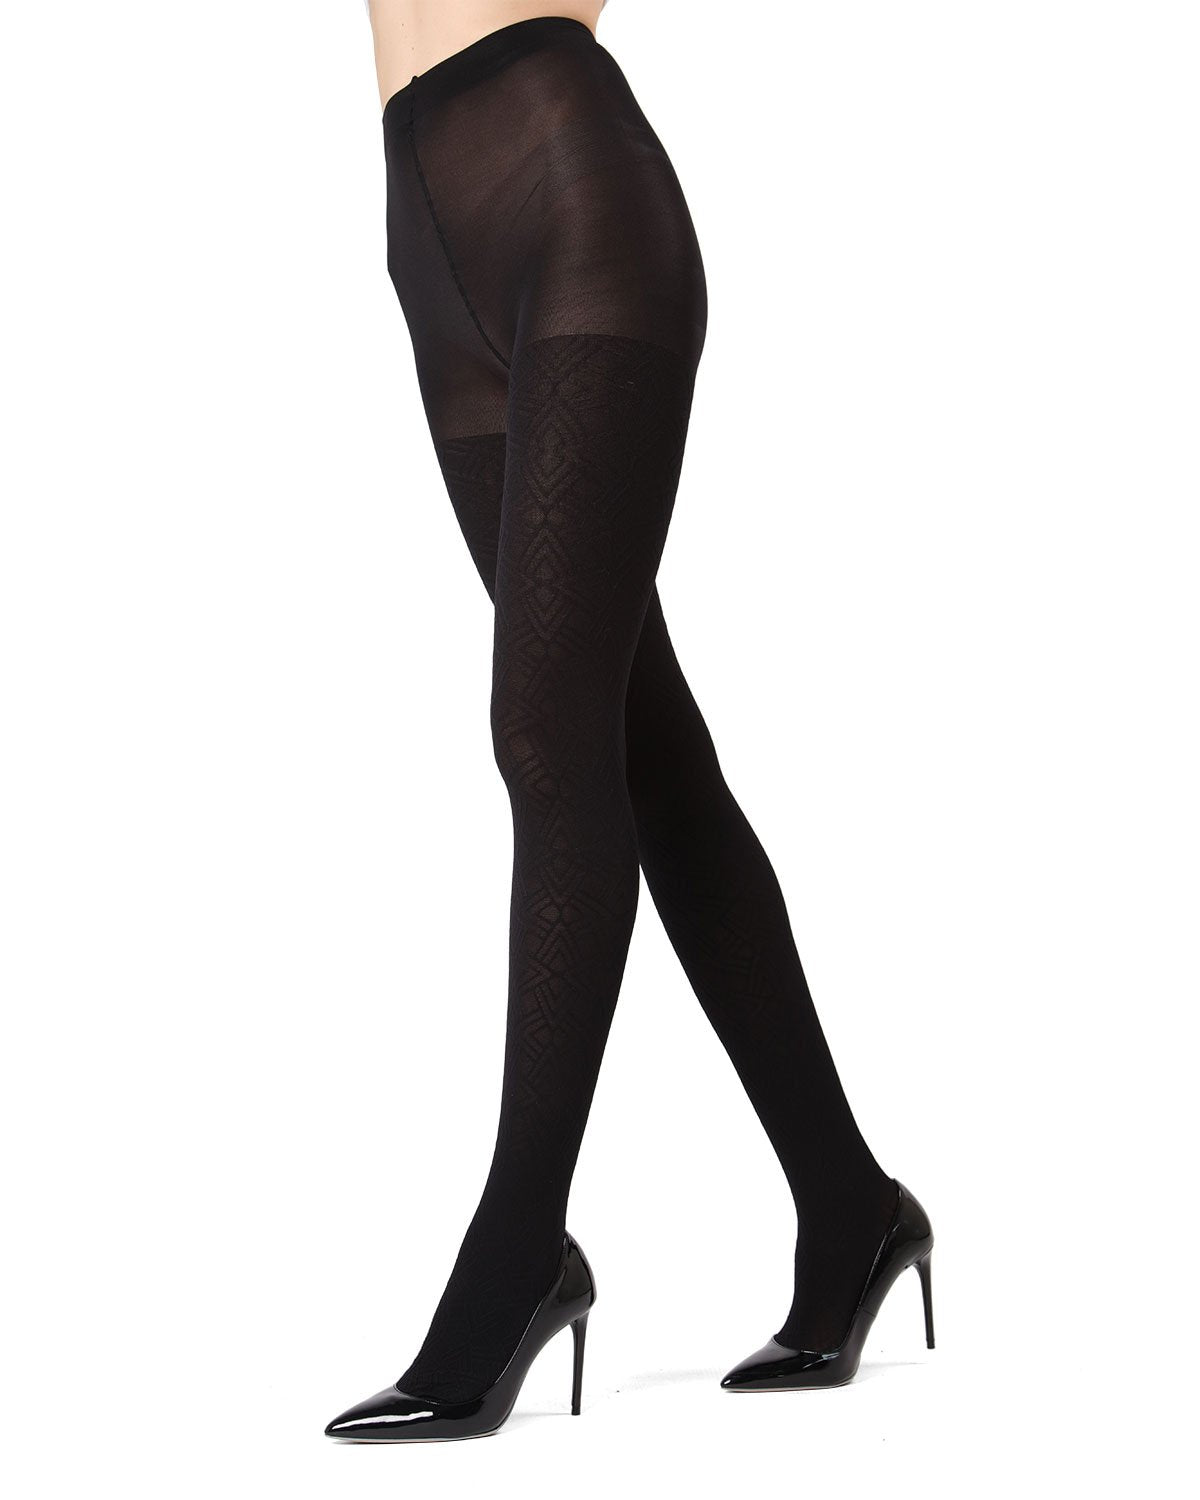 Graphection Tights